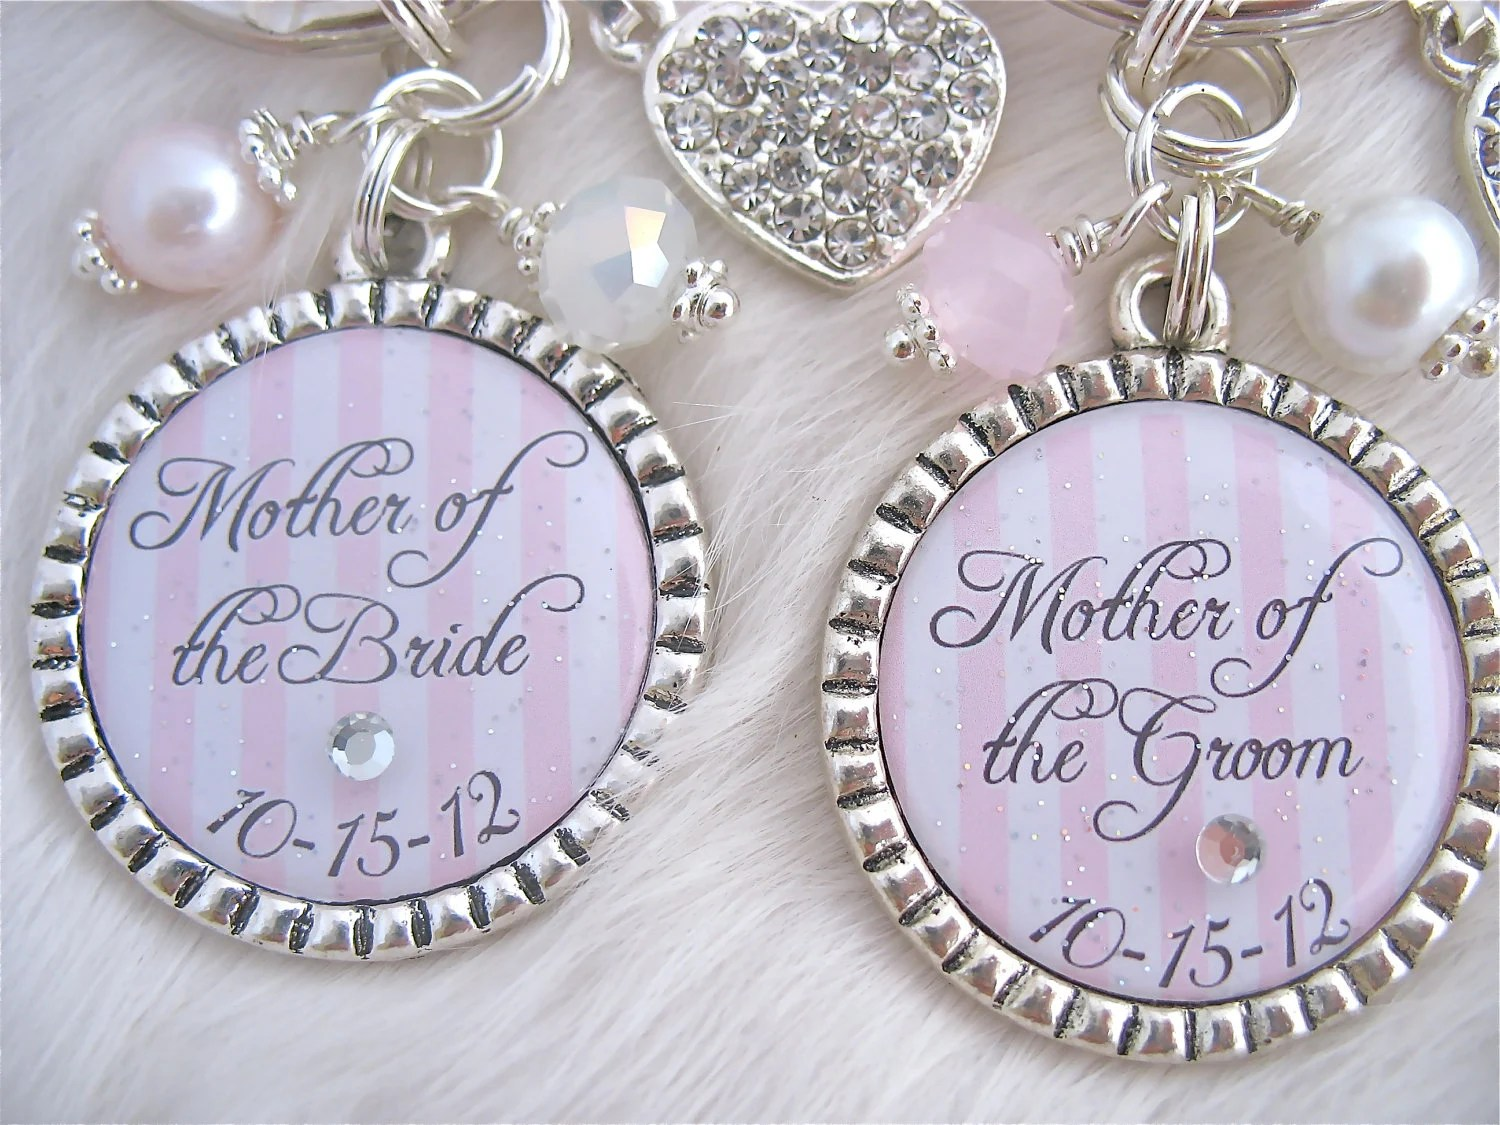 MOTHER of the BRIDE Gift Mother of the Groom Wedding date pendant necklace or Keychain Beach jewelry Bottle cap Mother Godmother, Wedding